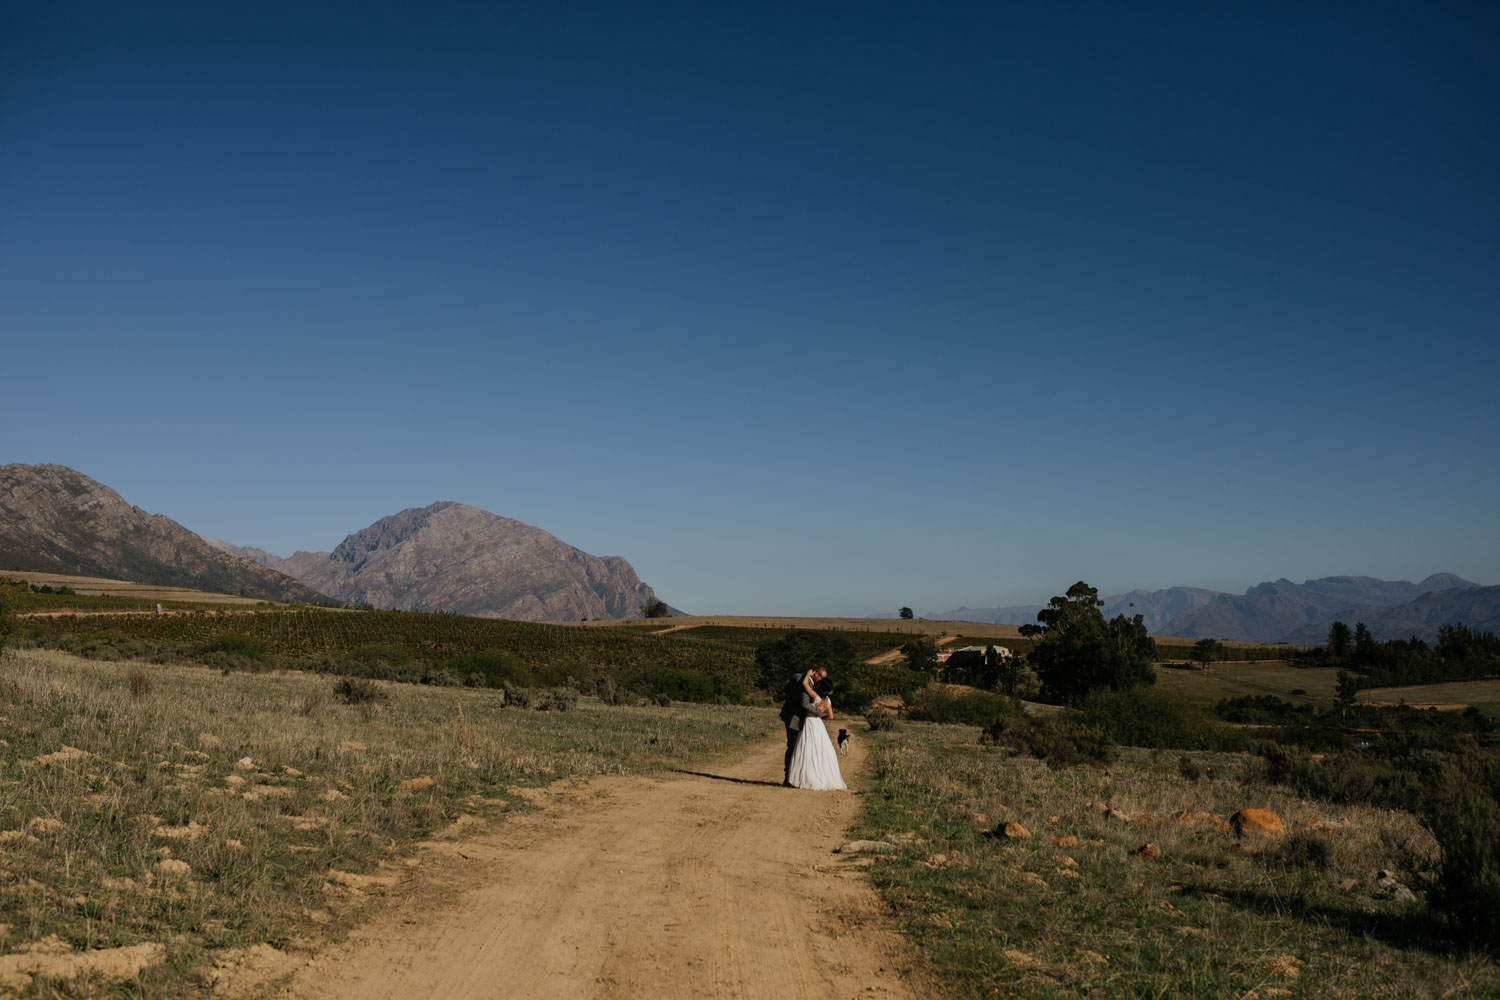 Bride and groom kissing each other affectionately on a dusty farm road in Tulbagh, near Riebeek Kasteel.